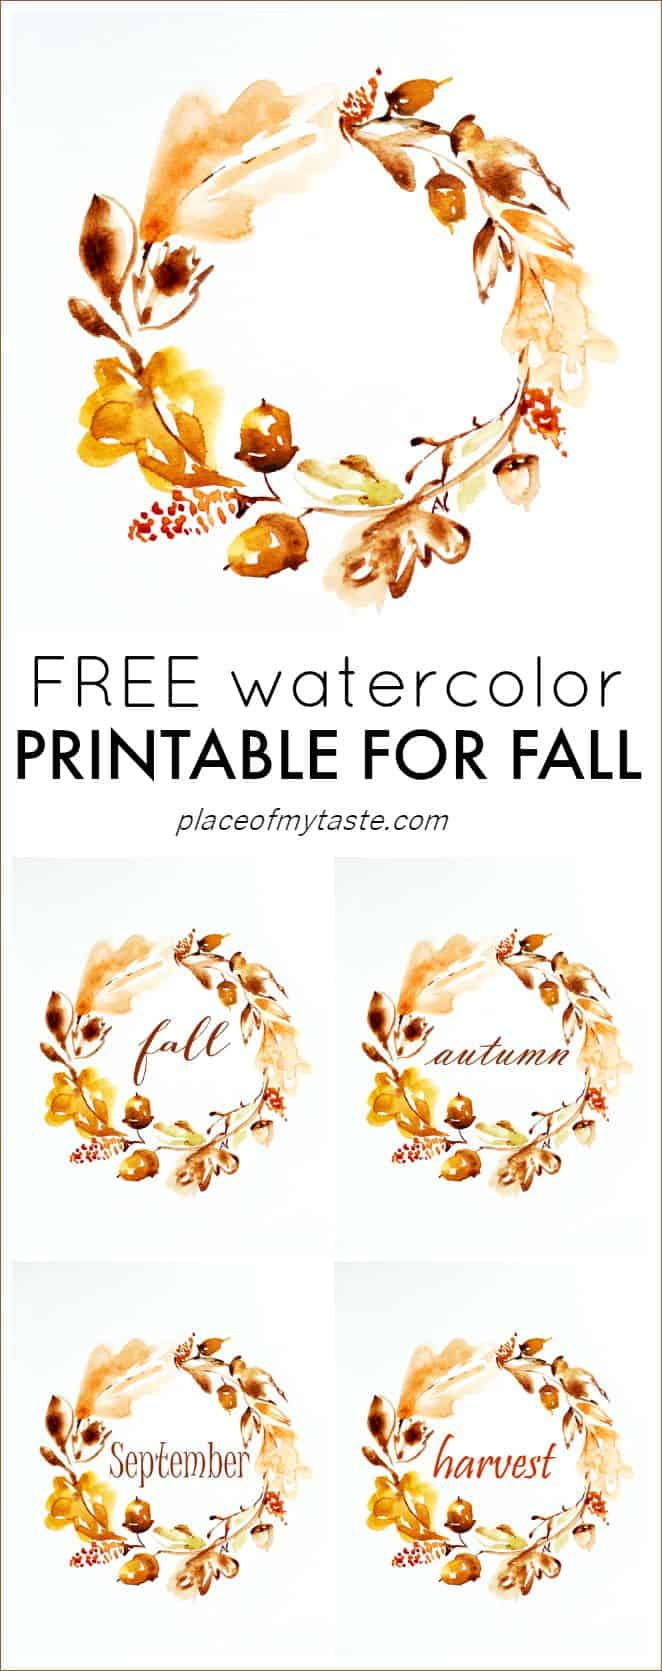 photo about Autumn Printable referred to as Get THIS Beautiful Absolutely free AUTUMN PRINTABLE! Consequently lovely♥